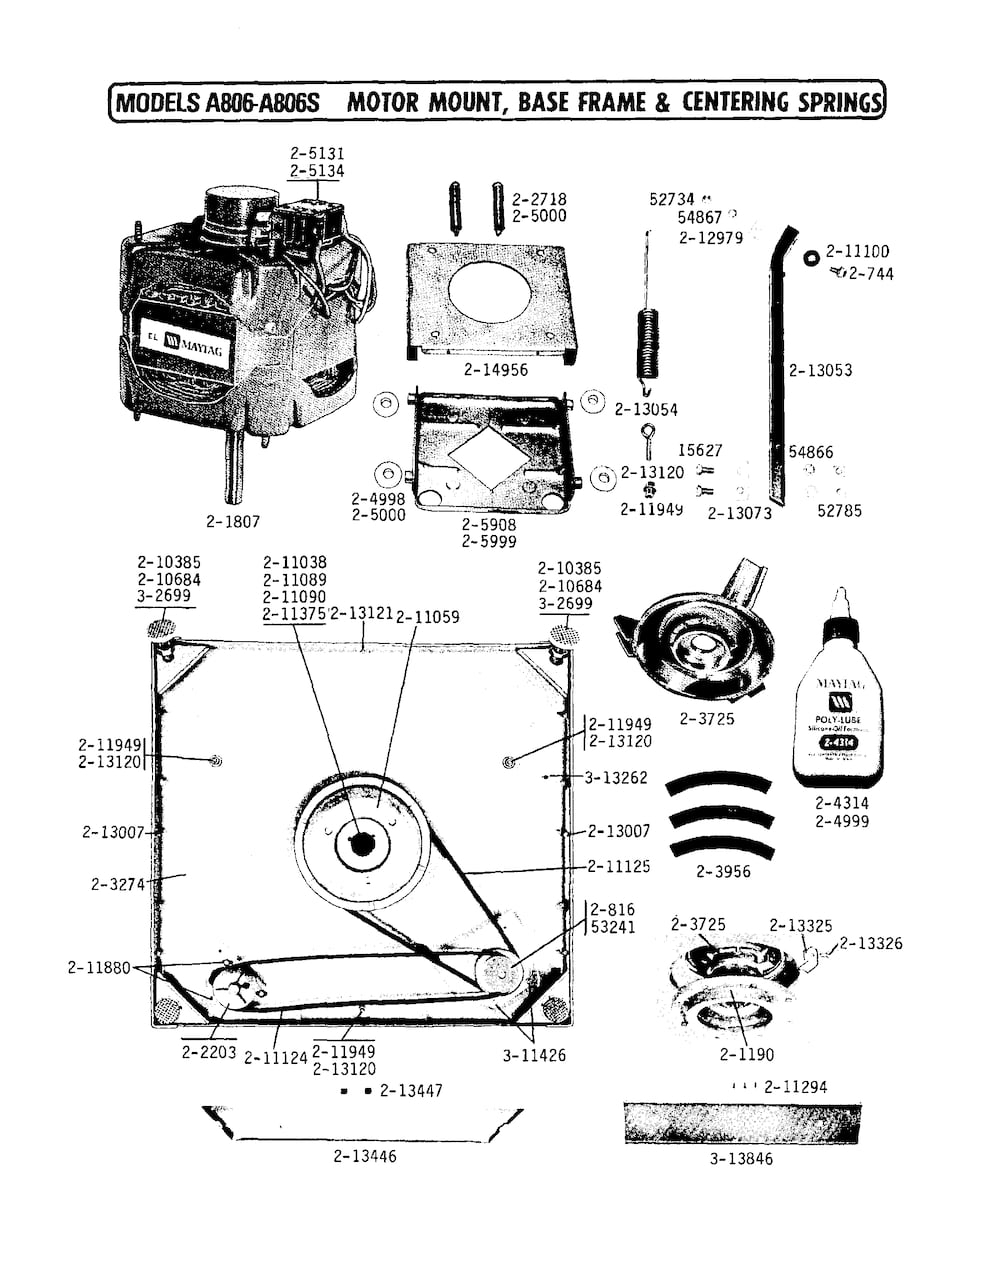 Maytag Washer Wiring Diagram - Lir Wiring 101 on kenmore washing machine clutch, washing machine parts diagram, kenmore washing machine exploded view, estate washing machine wiring diagram, whirlpool stove wiring diagram, washing machine motor wiring diagram, samsung washing machine wiring diagram, kenmore washing machine repair, kenmore washing machine parts, admiral washing machine wiring diagram, kenmore washing machine installation, bosch washing machine wiring diagram, kitchenaid washing machine wiring diagram, kenmore washing machine motor, maytag washing machine wiring diagram, kenmore washing machine timer, kenmore electric dryer diagram, ge washing machine diagram, kenmore washing machine user manual, kenmore washing machine brake,